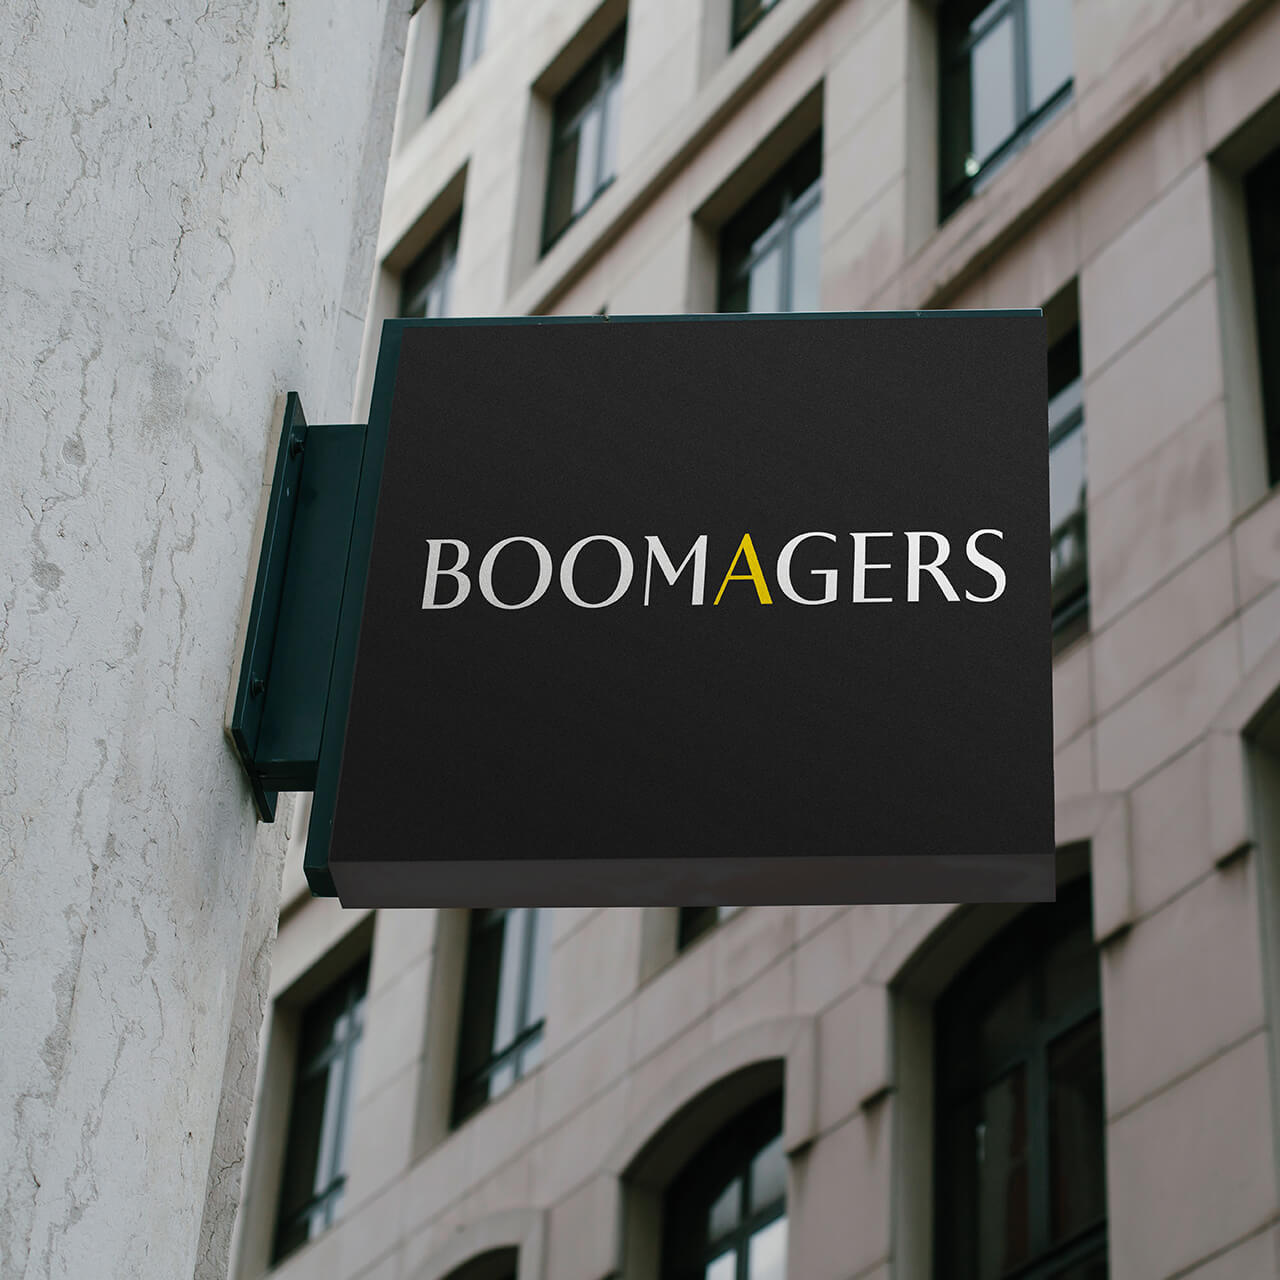 boomagers_sign